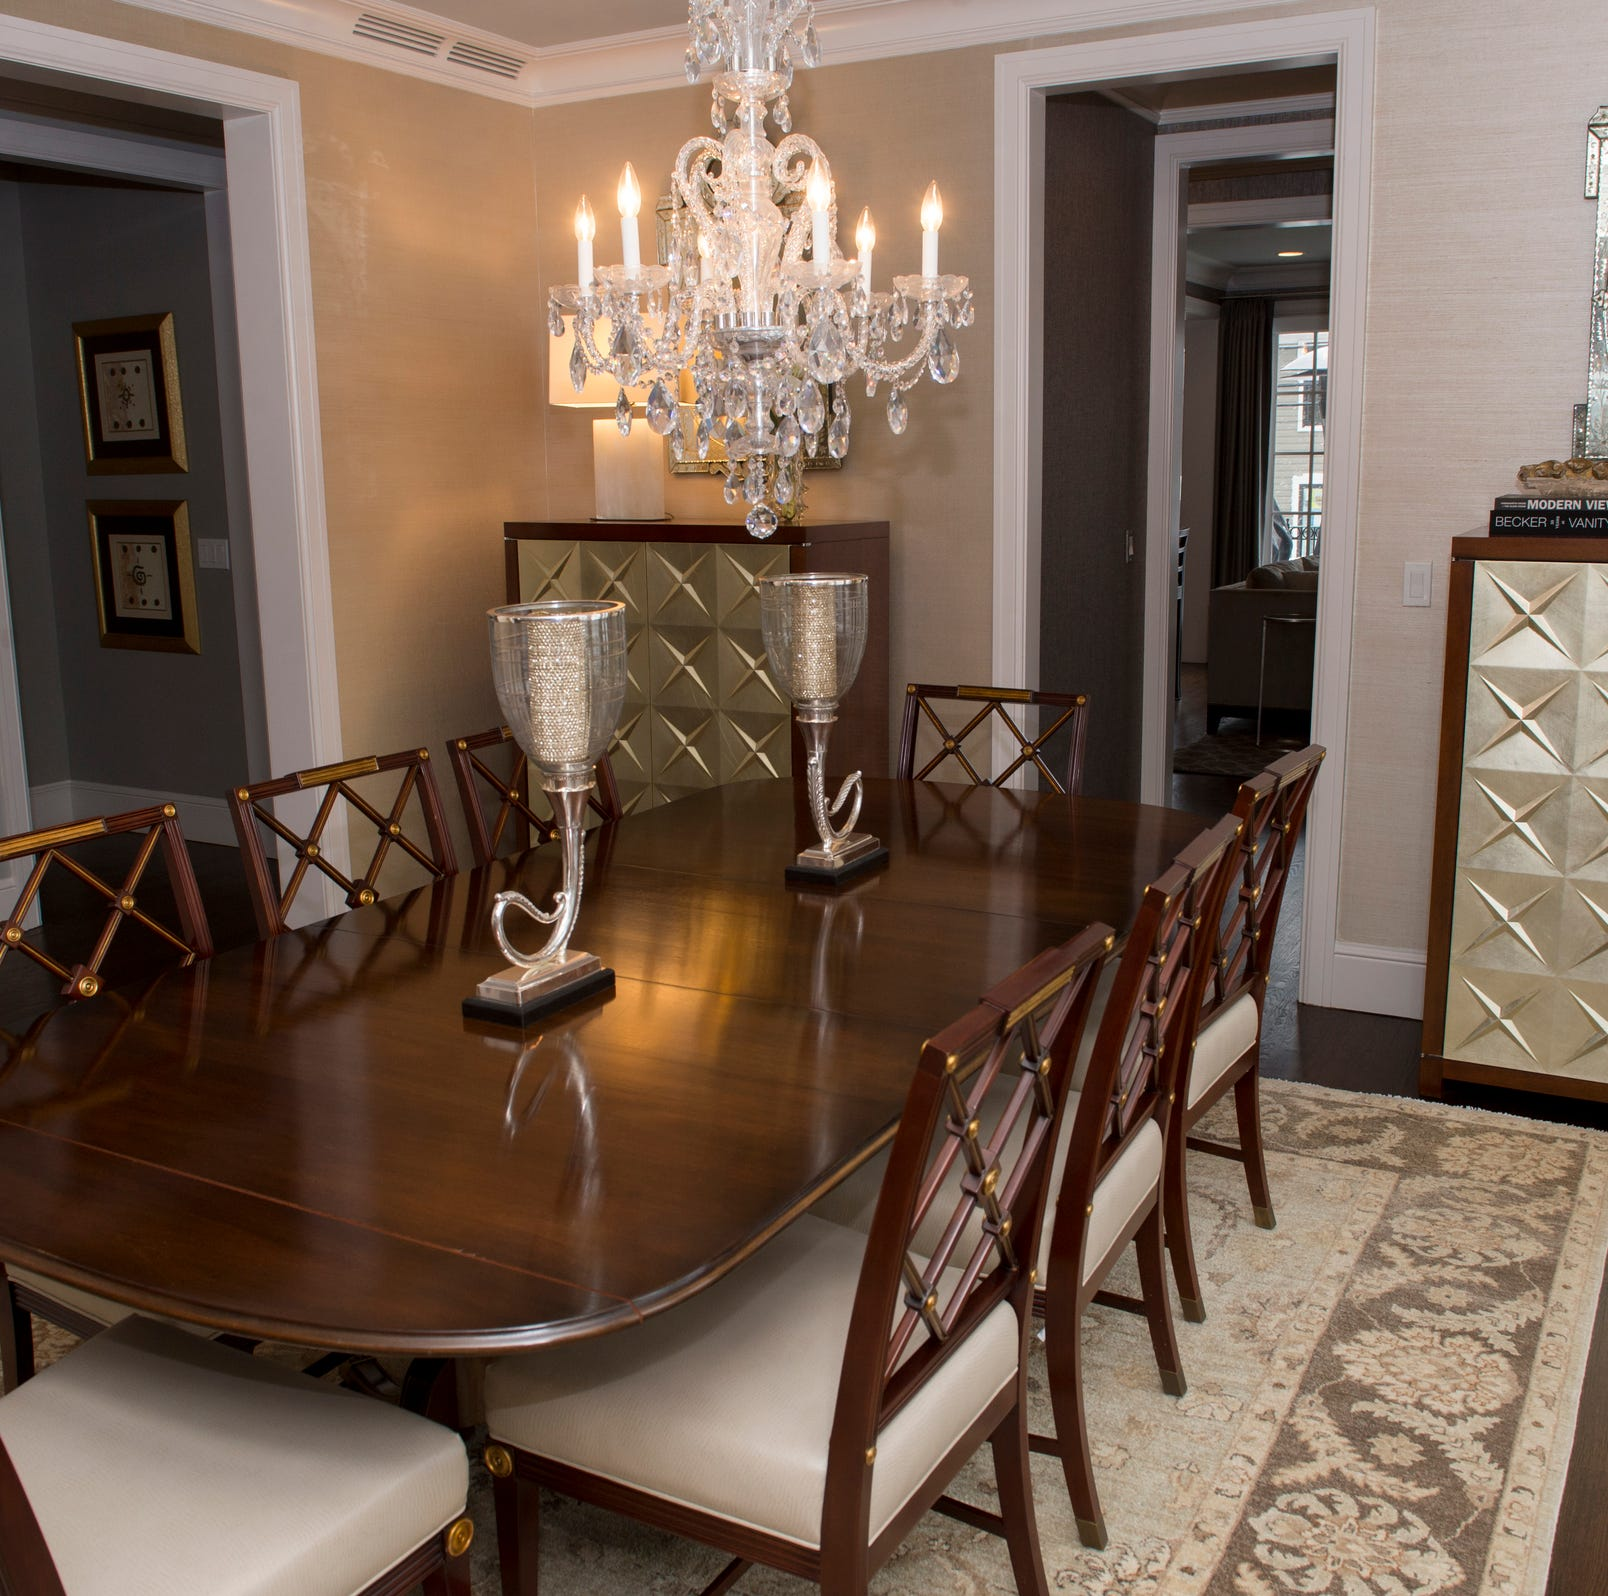 Posh $2.5M Birmingham town house has a level for everything